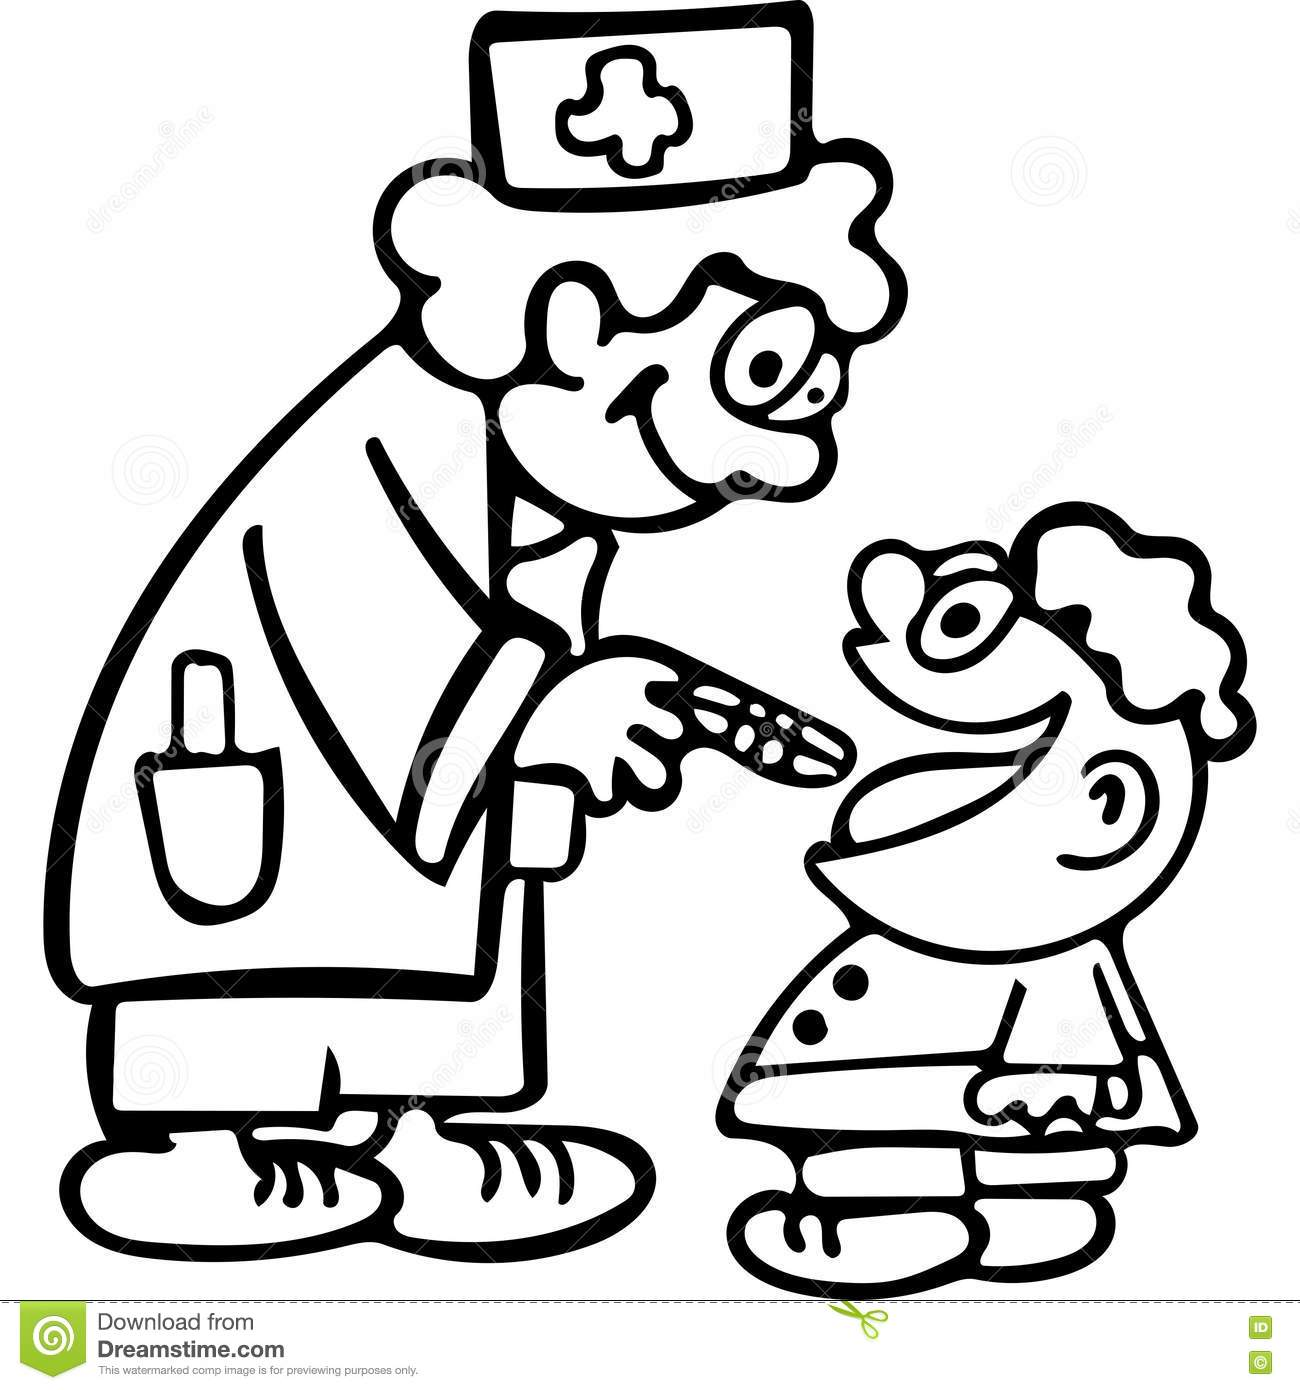 Coloring Picture Of Doctor Nurse Tools Coloring Page - oukas.info